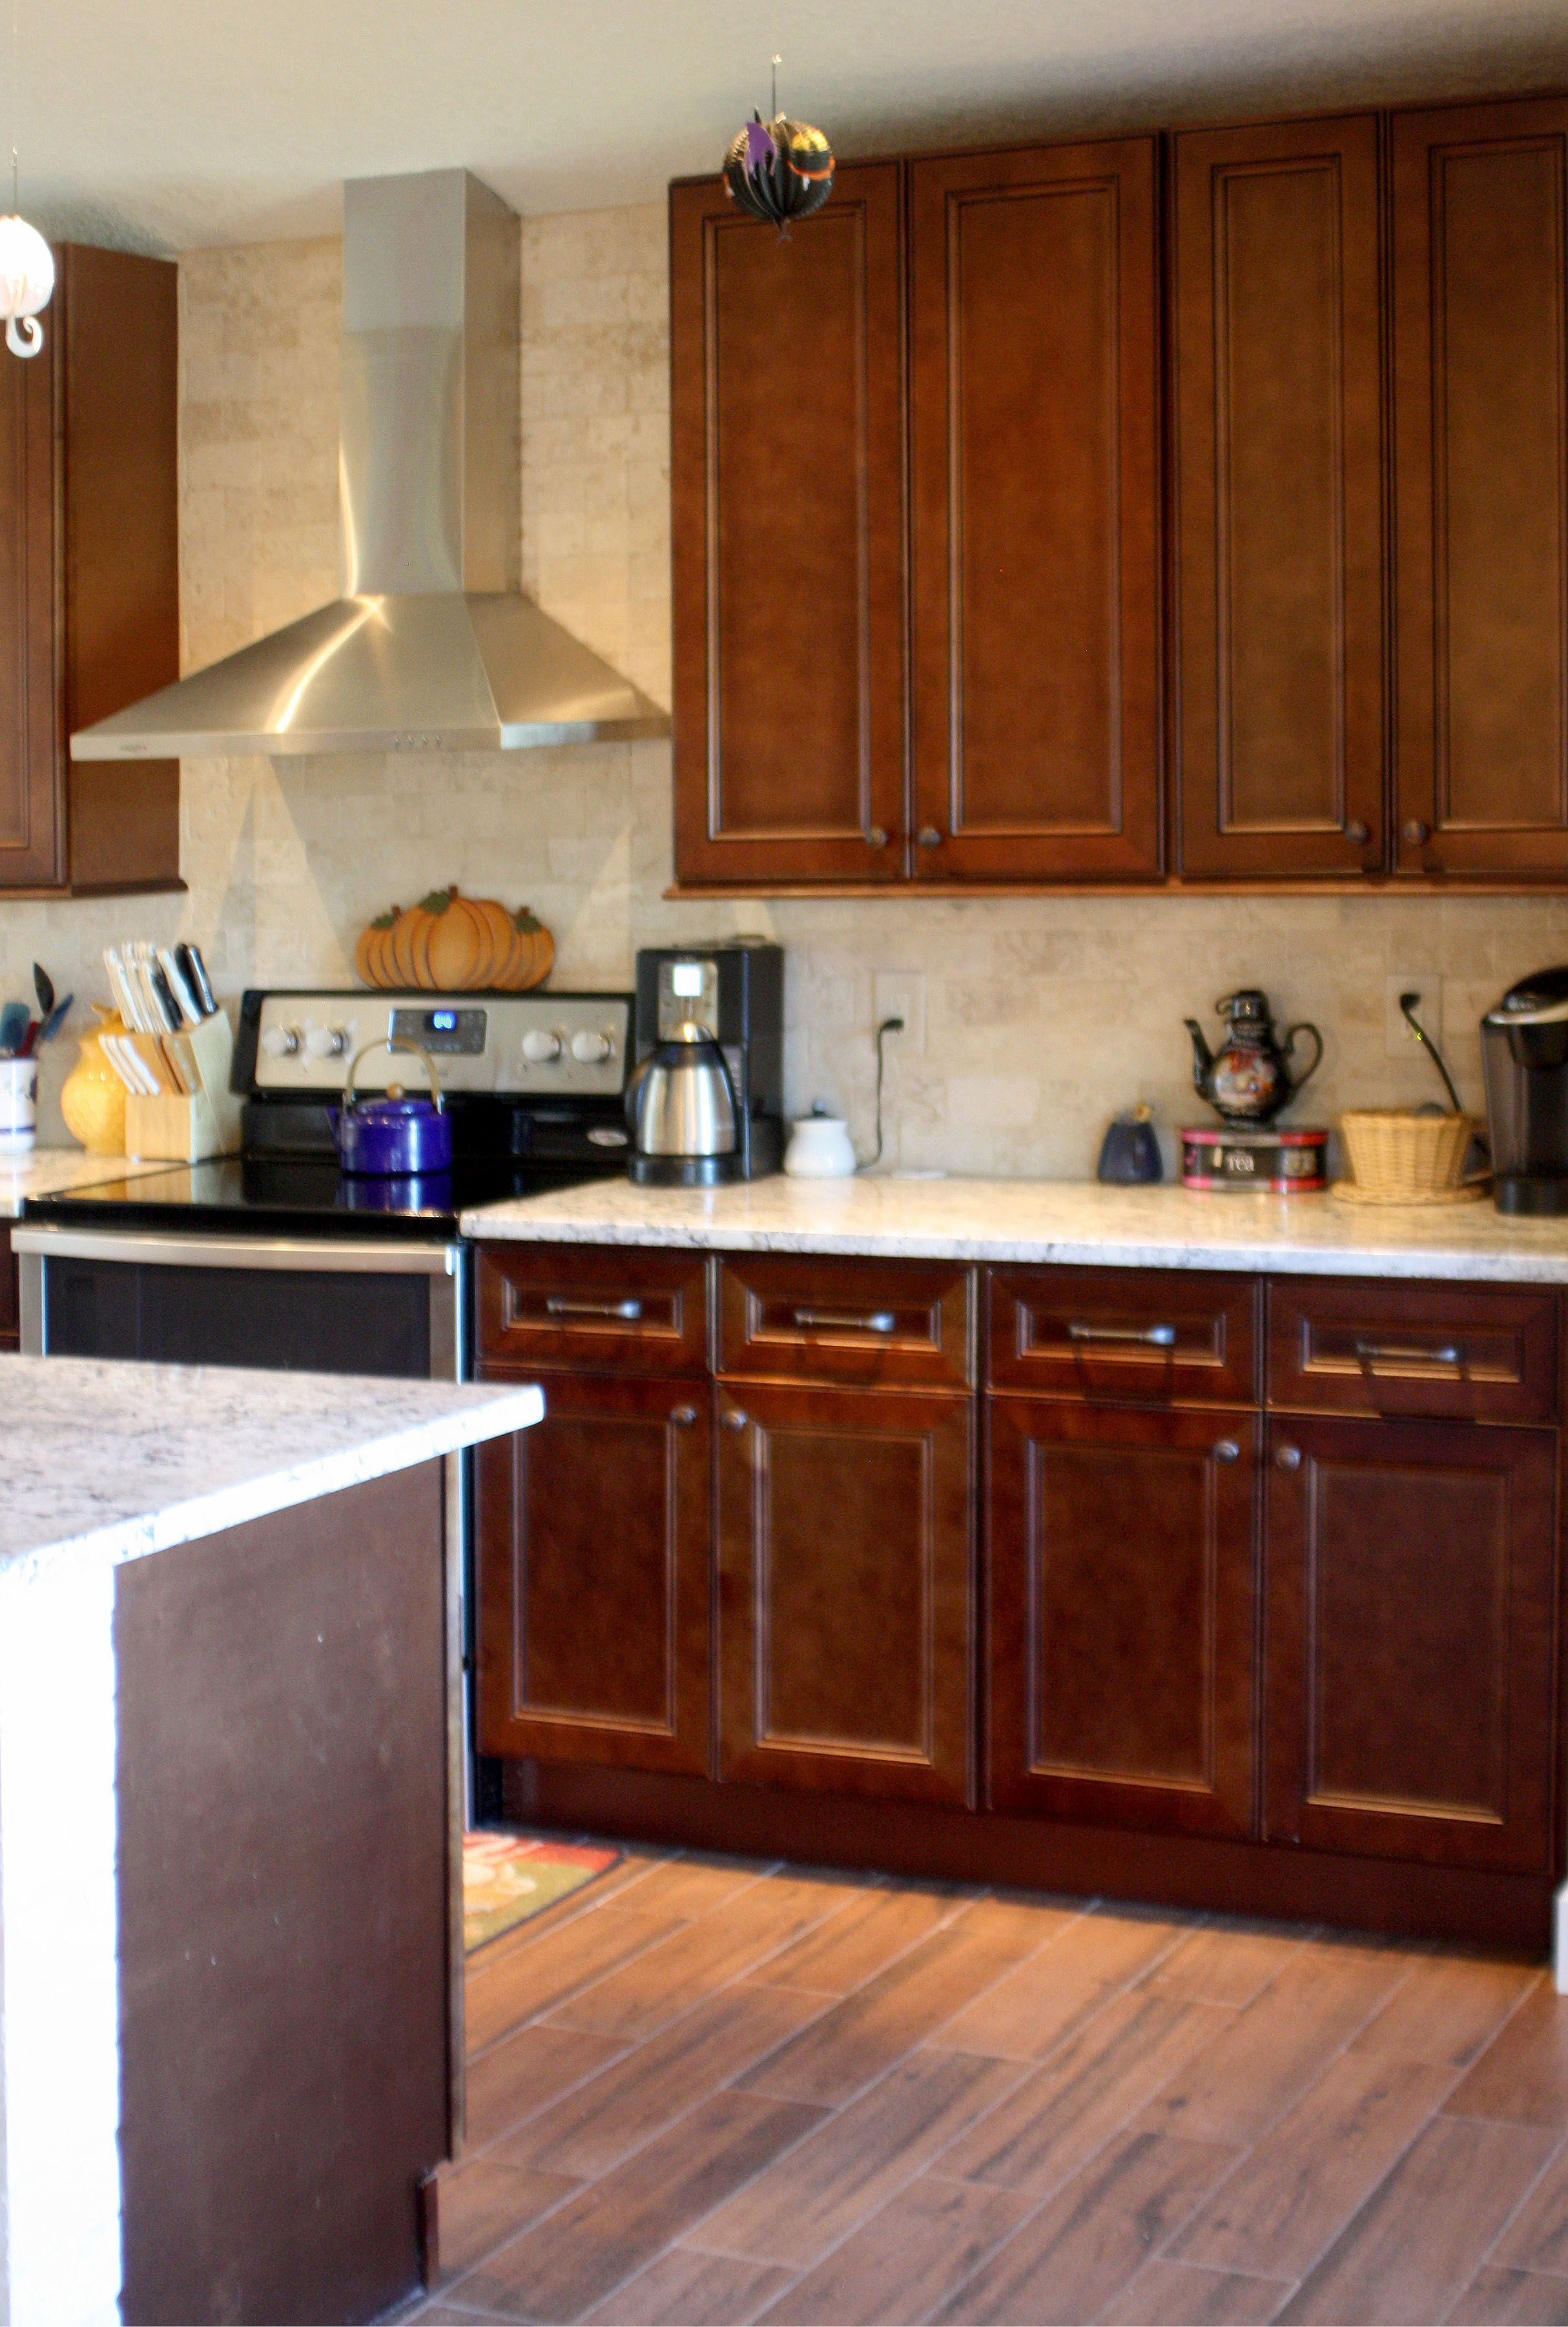 All New Cabinets, Hardware And Walls Of Travertine Subway Tile Came From Surplus  Warehouse Store In Apopka, Florida. I Replaced The Fluorescent Lighting ...